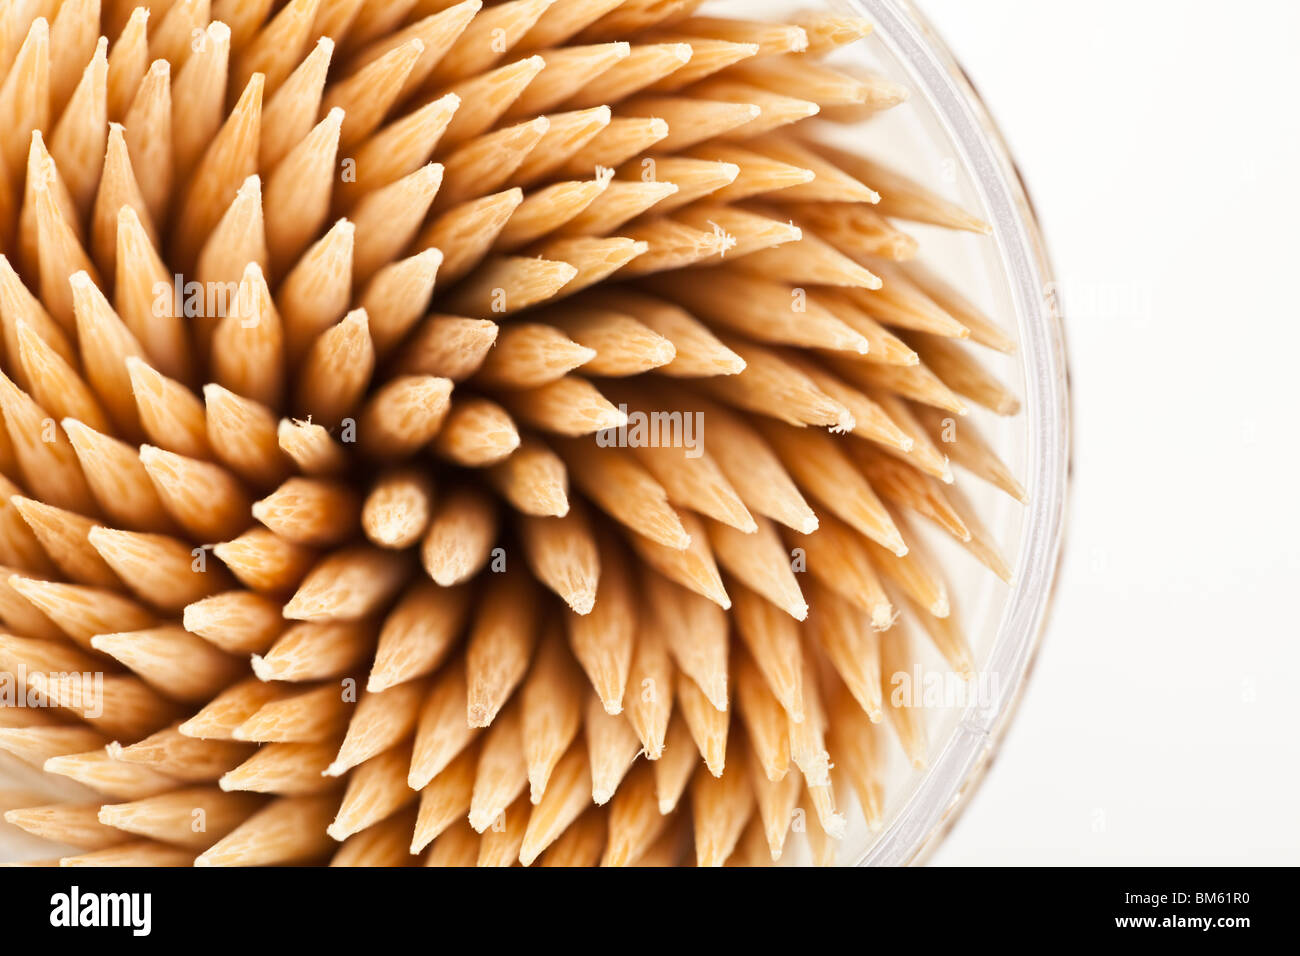 Toothpicks with white background close up shot - Stock Image